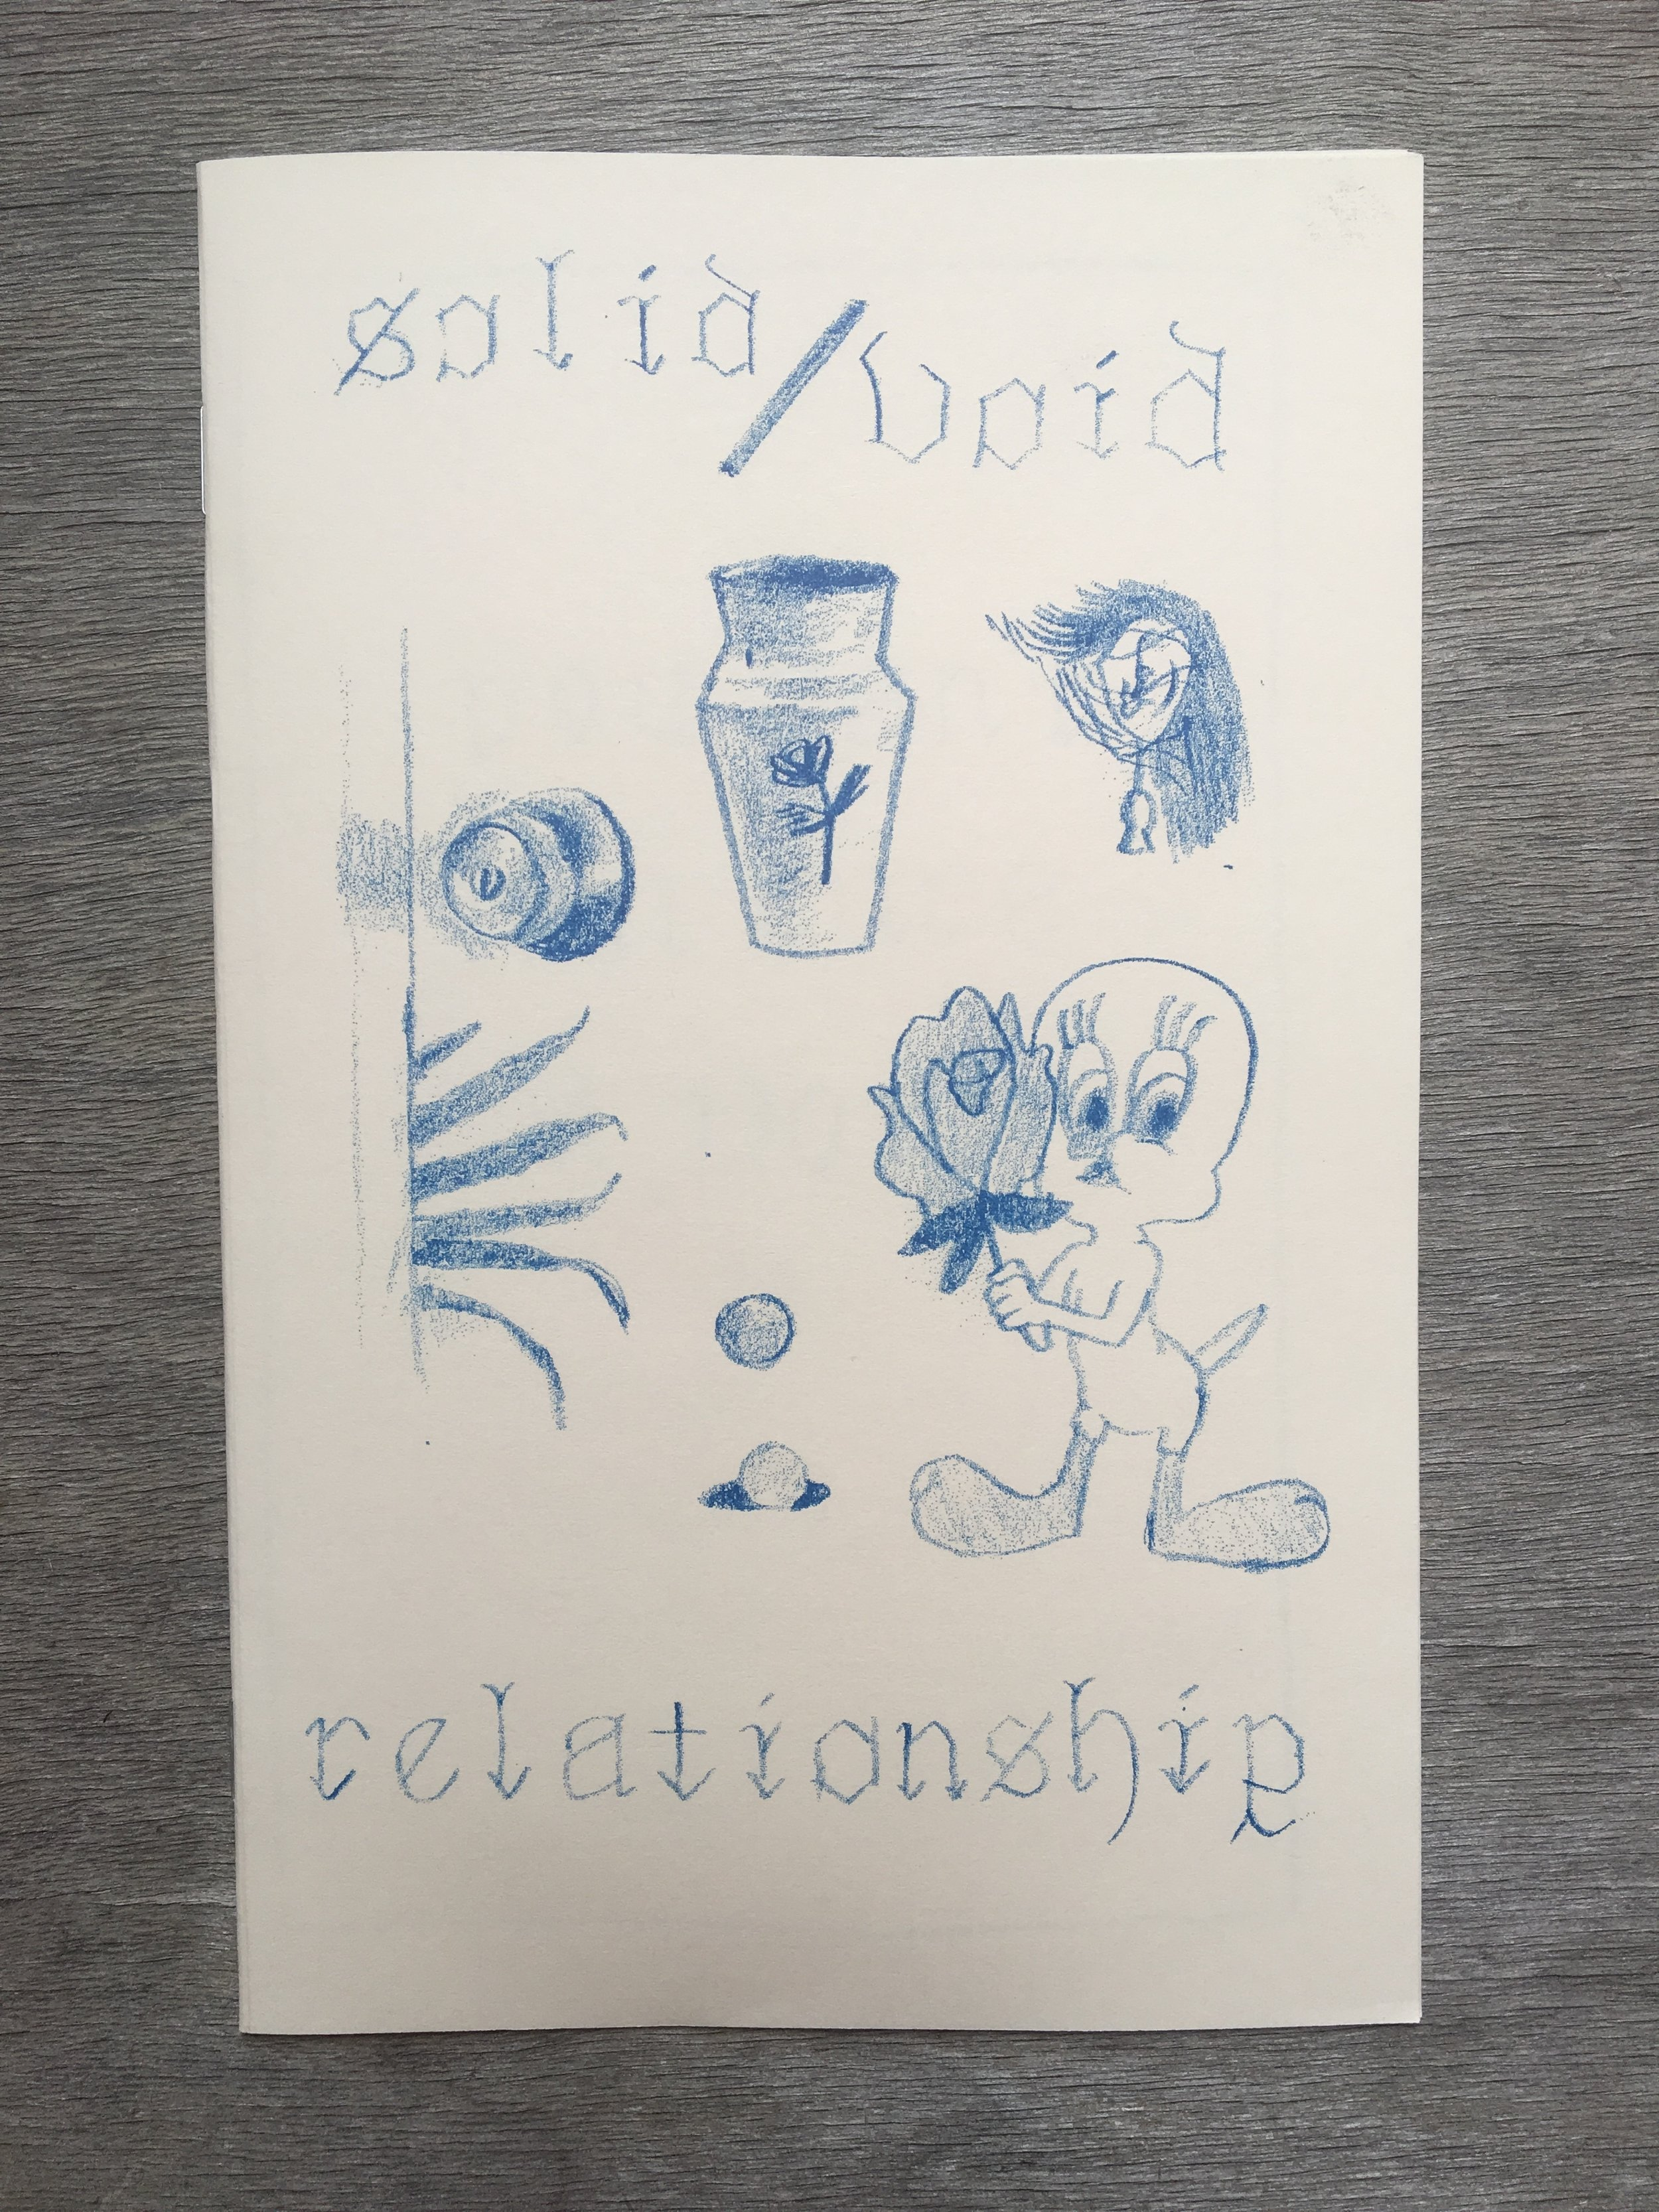 "Solid / Void Relationship by Hatepaste - Third Printing8 pg4.5"" x 5.5""Edition of 502018"